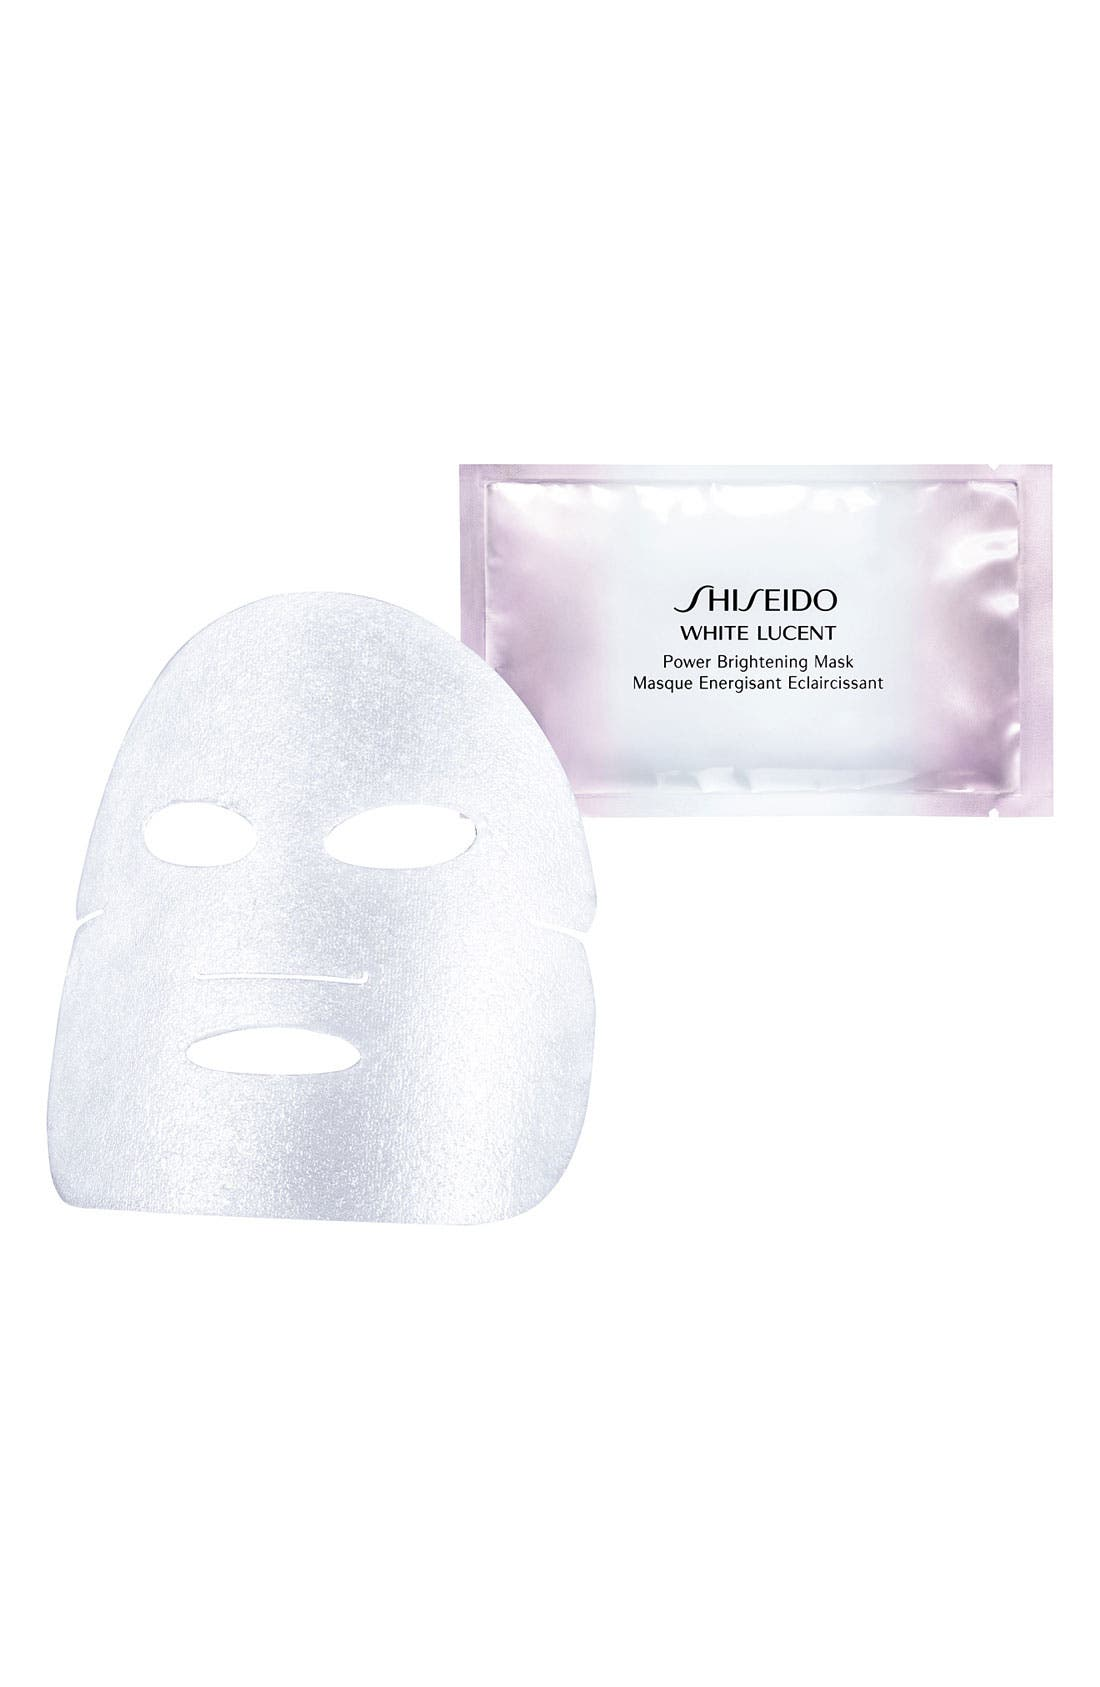 White Lucent Power Brightening Mask,                         Main,                         color, NO COLOR